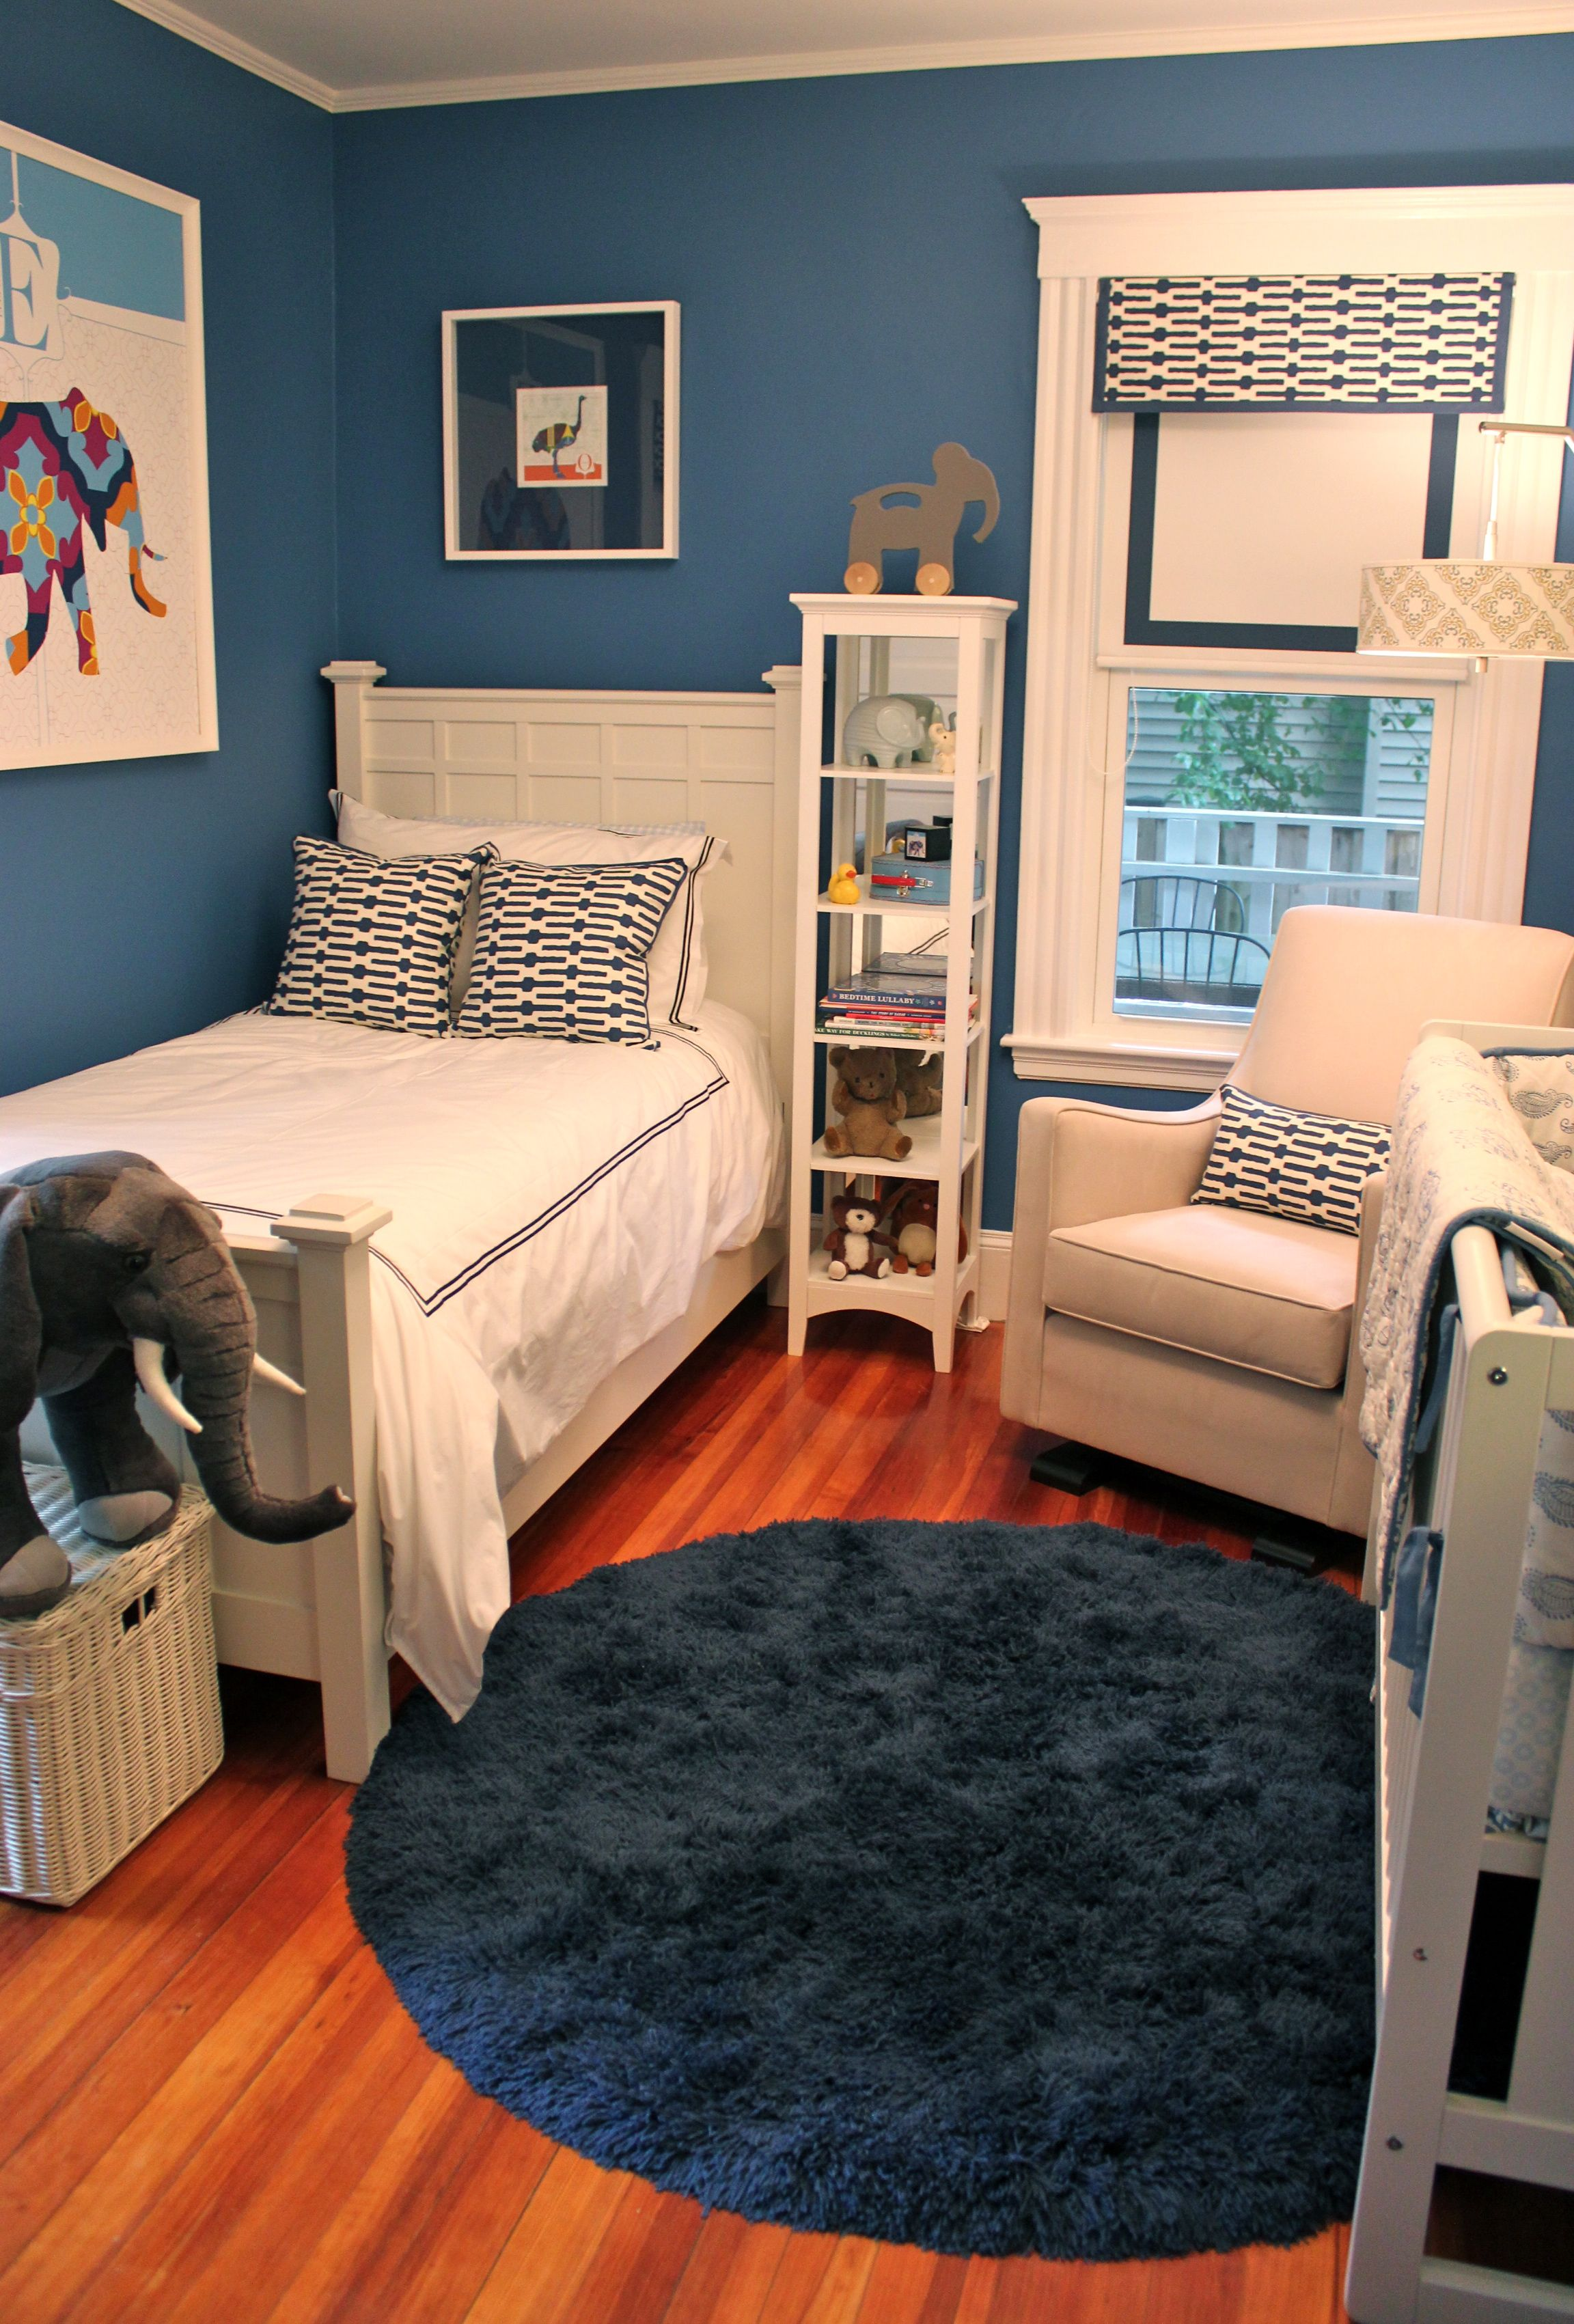 Shared Bedroom Berry Bedrooms And Room - Shared bedroom ideas for mom and toddler